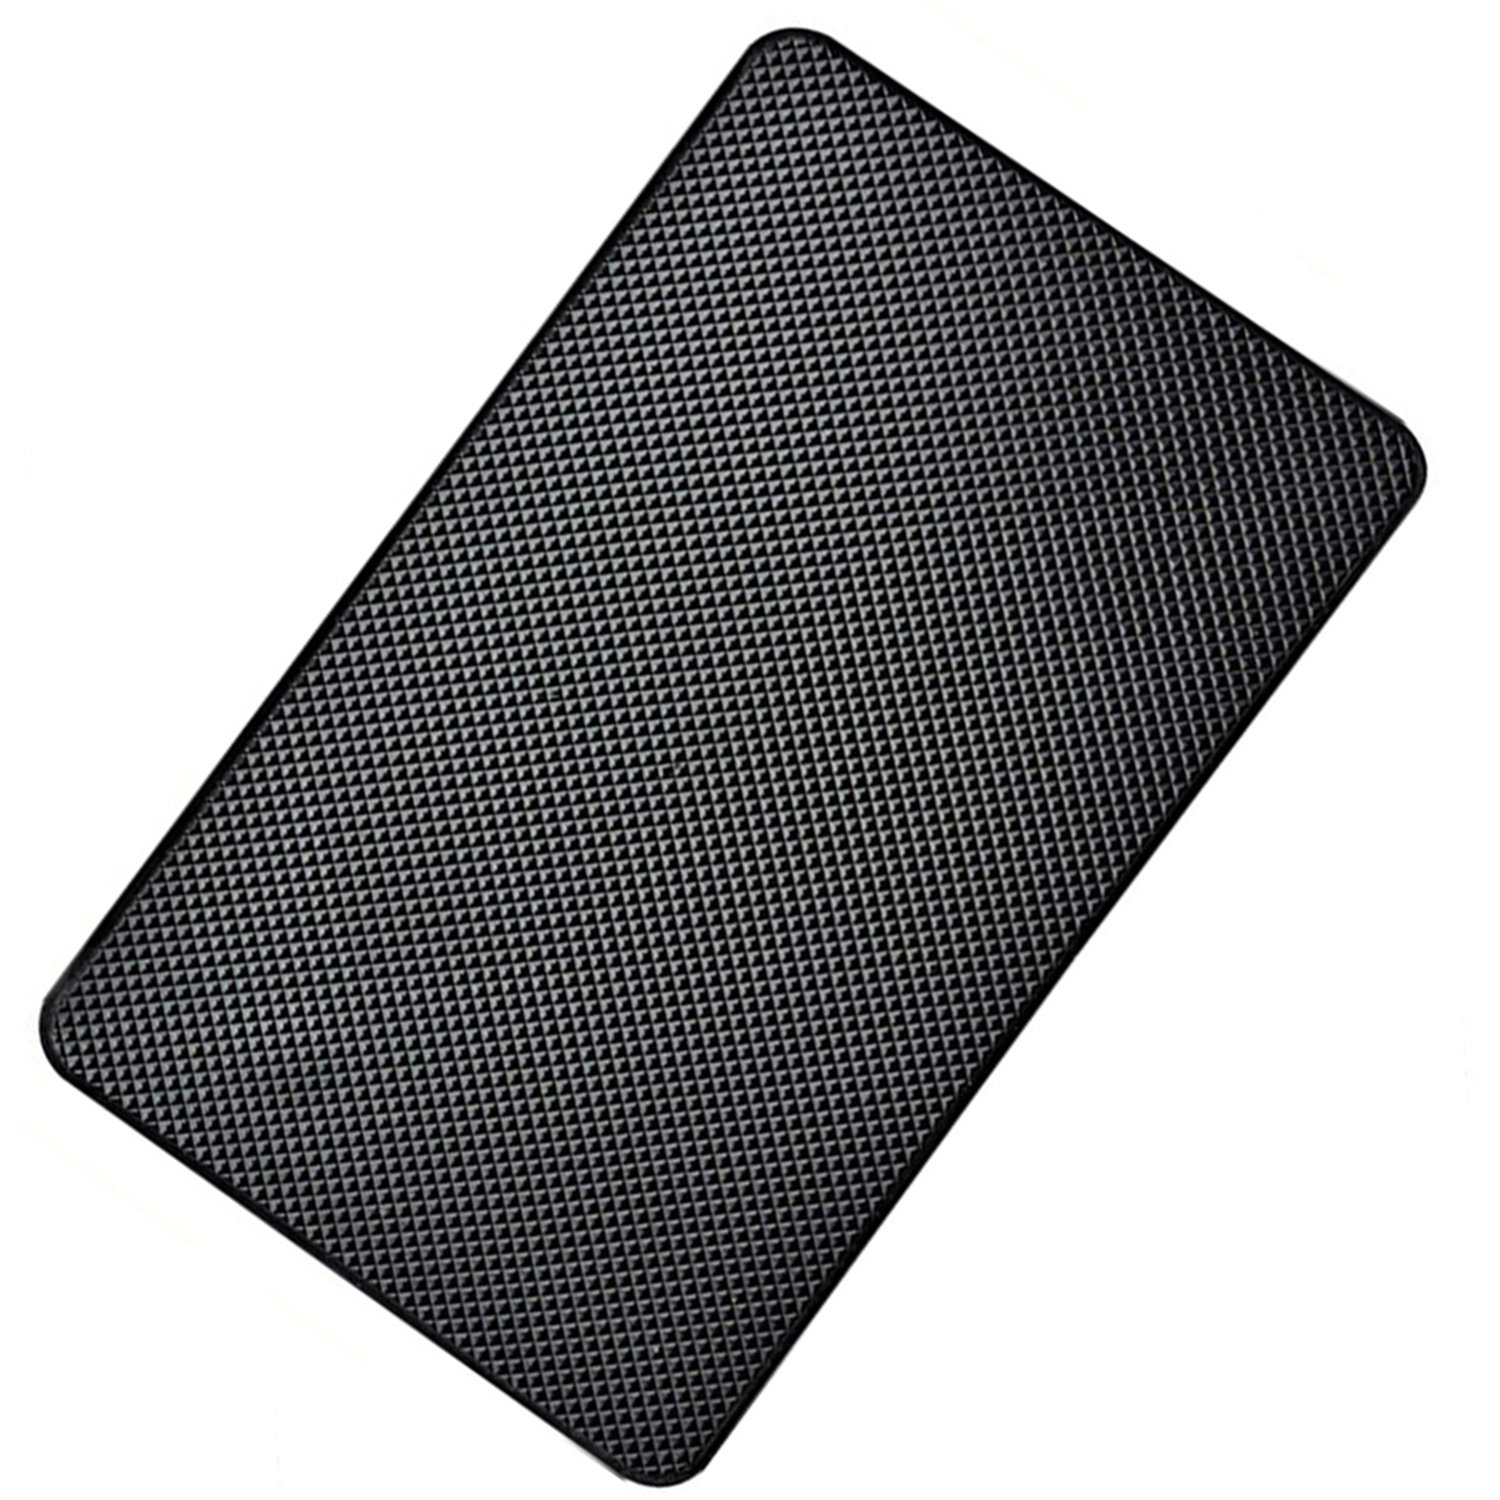 Hulless - Super Sticky 27 x 15cm Magic Anti-Slip Non-Slip Mat Car Dashboard Sticky Pad Adhesive Mat for Cell Phone, CD, Electronic Devices, iPhone, ,Keychains, Sun Glasses Holder, GPS - Black